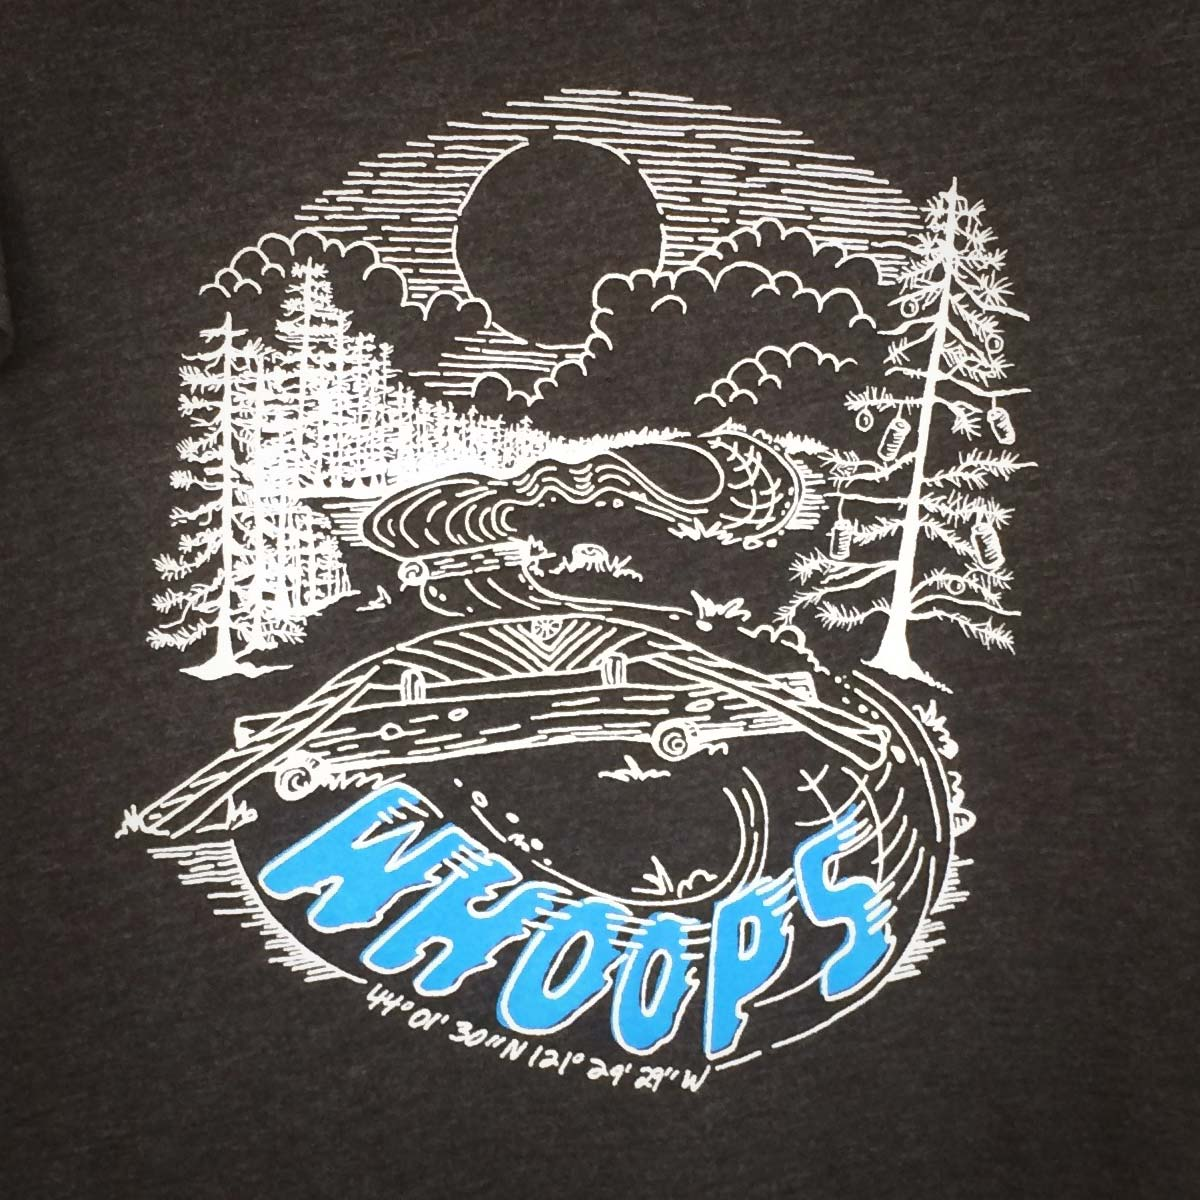 Whoops Trail T-shirt